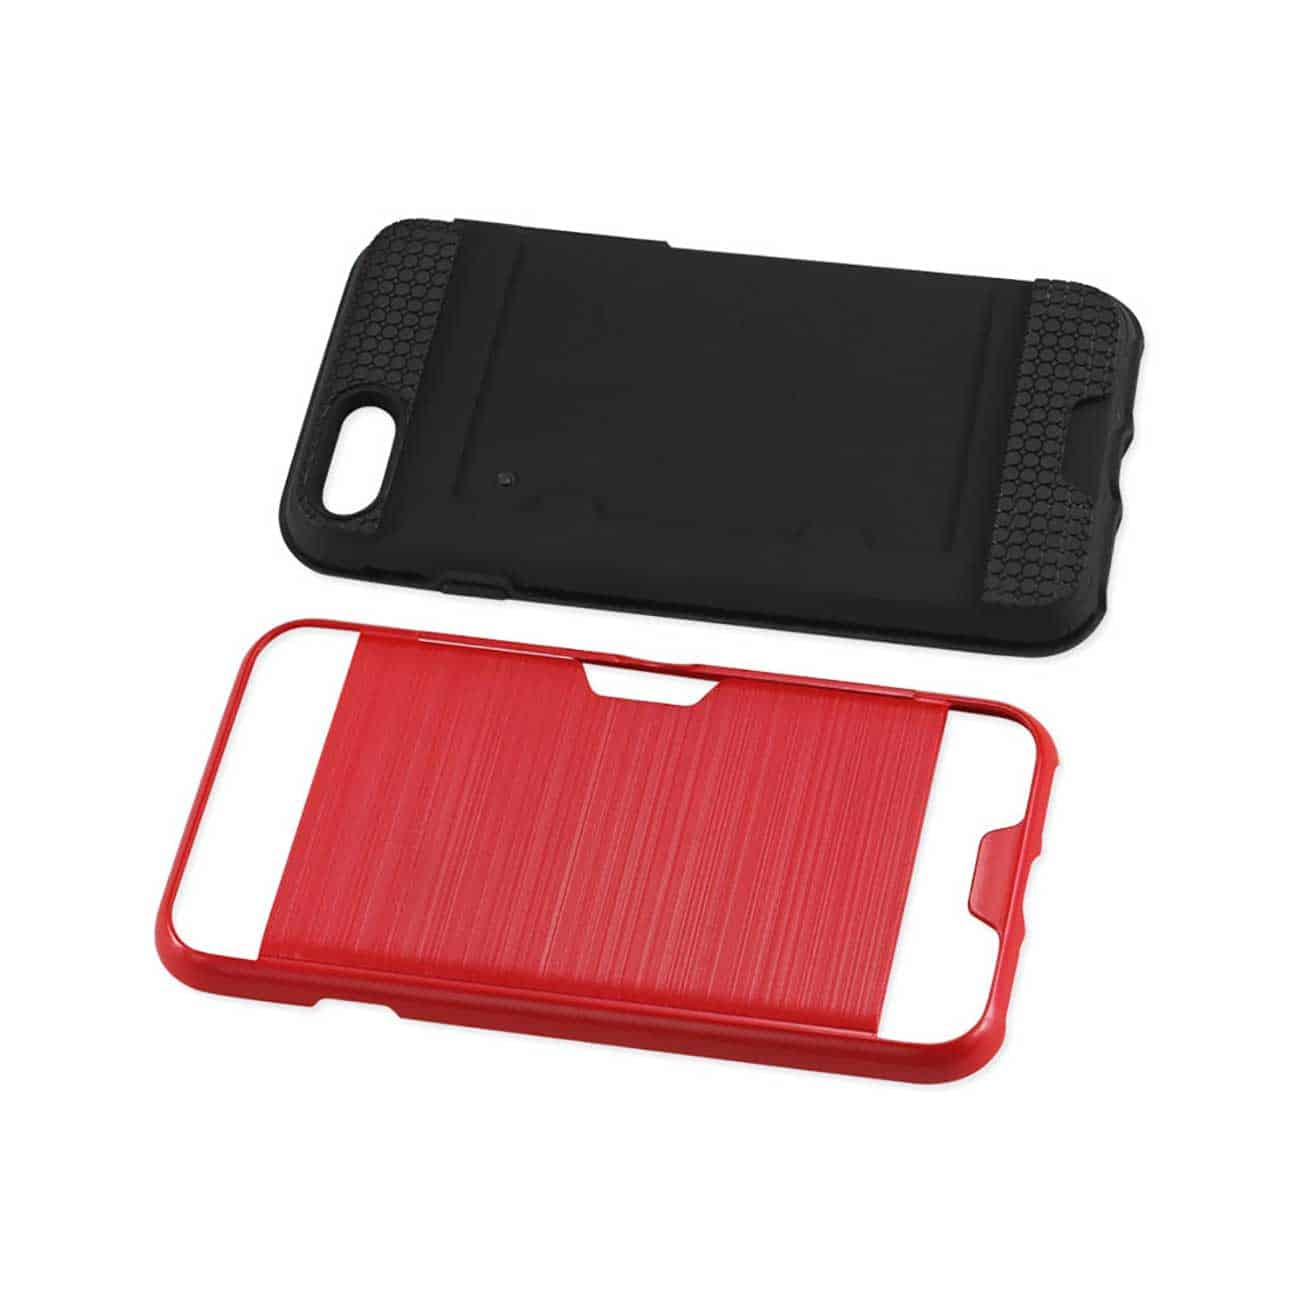 iPhone 8/ 7 Slim Armor Hybrid Case With Card Holder In Red